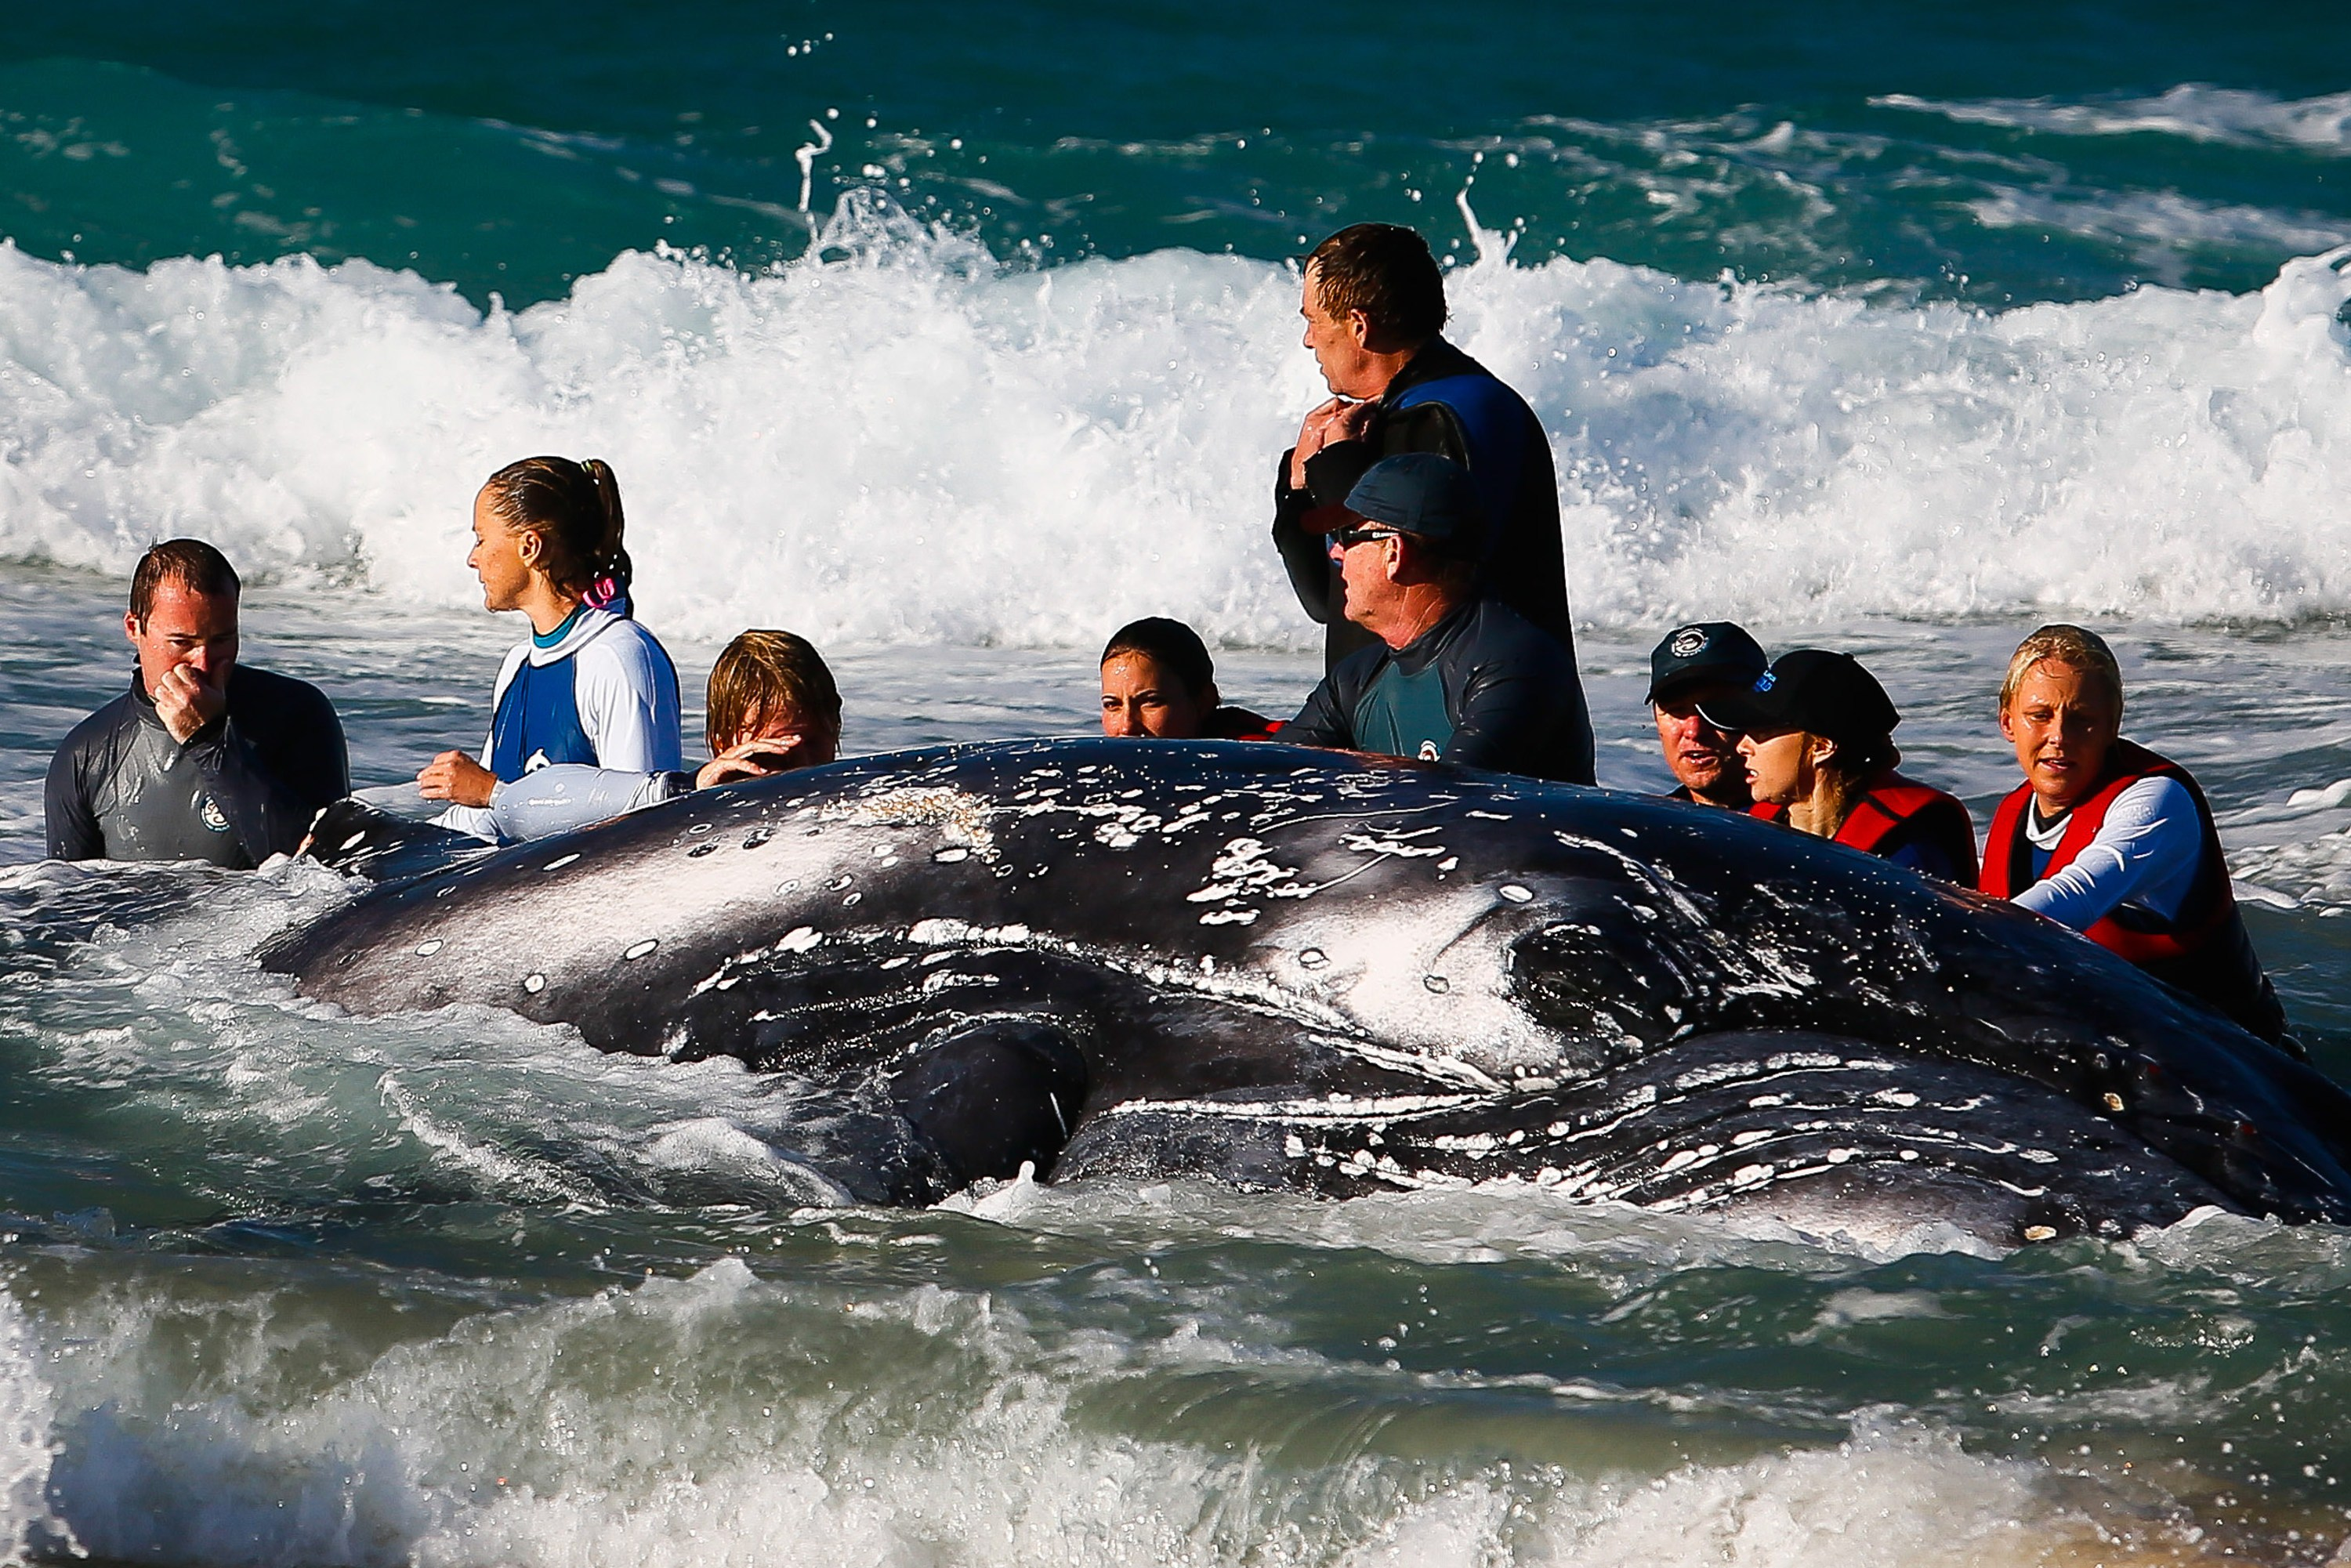 Sea World marine rescuer workers try to rescue a humpback whale beached at Palm Beach on Queensland's Gold Coast on July 9, 2014. (PATRICK HAMILTON/AFP/Getty Images)